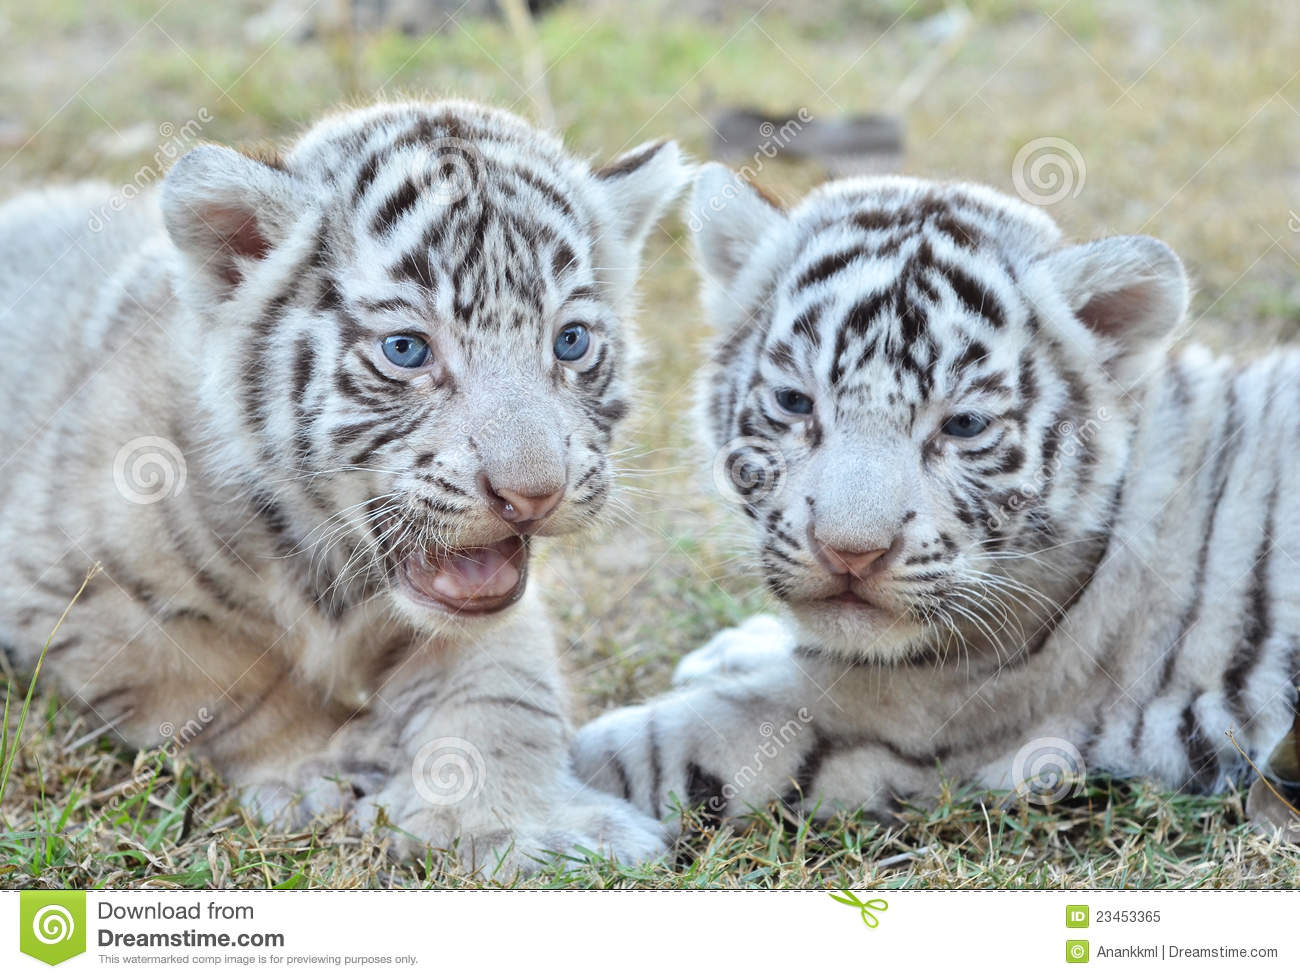 Cute Cubs Wallpaper Baby White Tiger Stock Image Image Of Extinct Carnivore